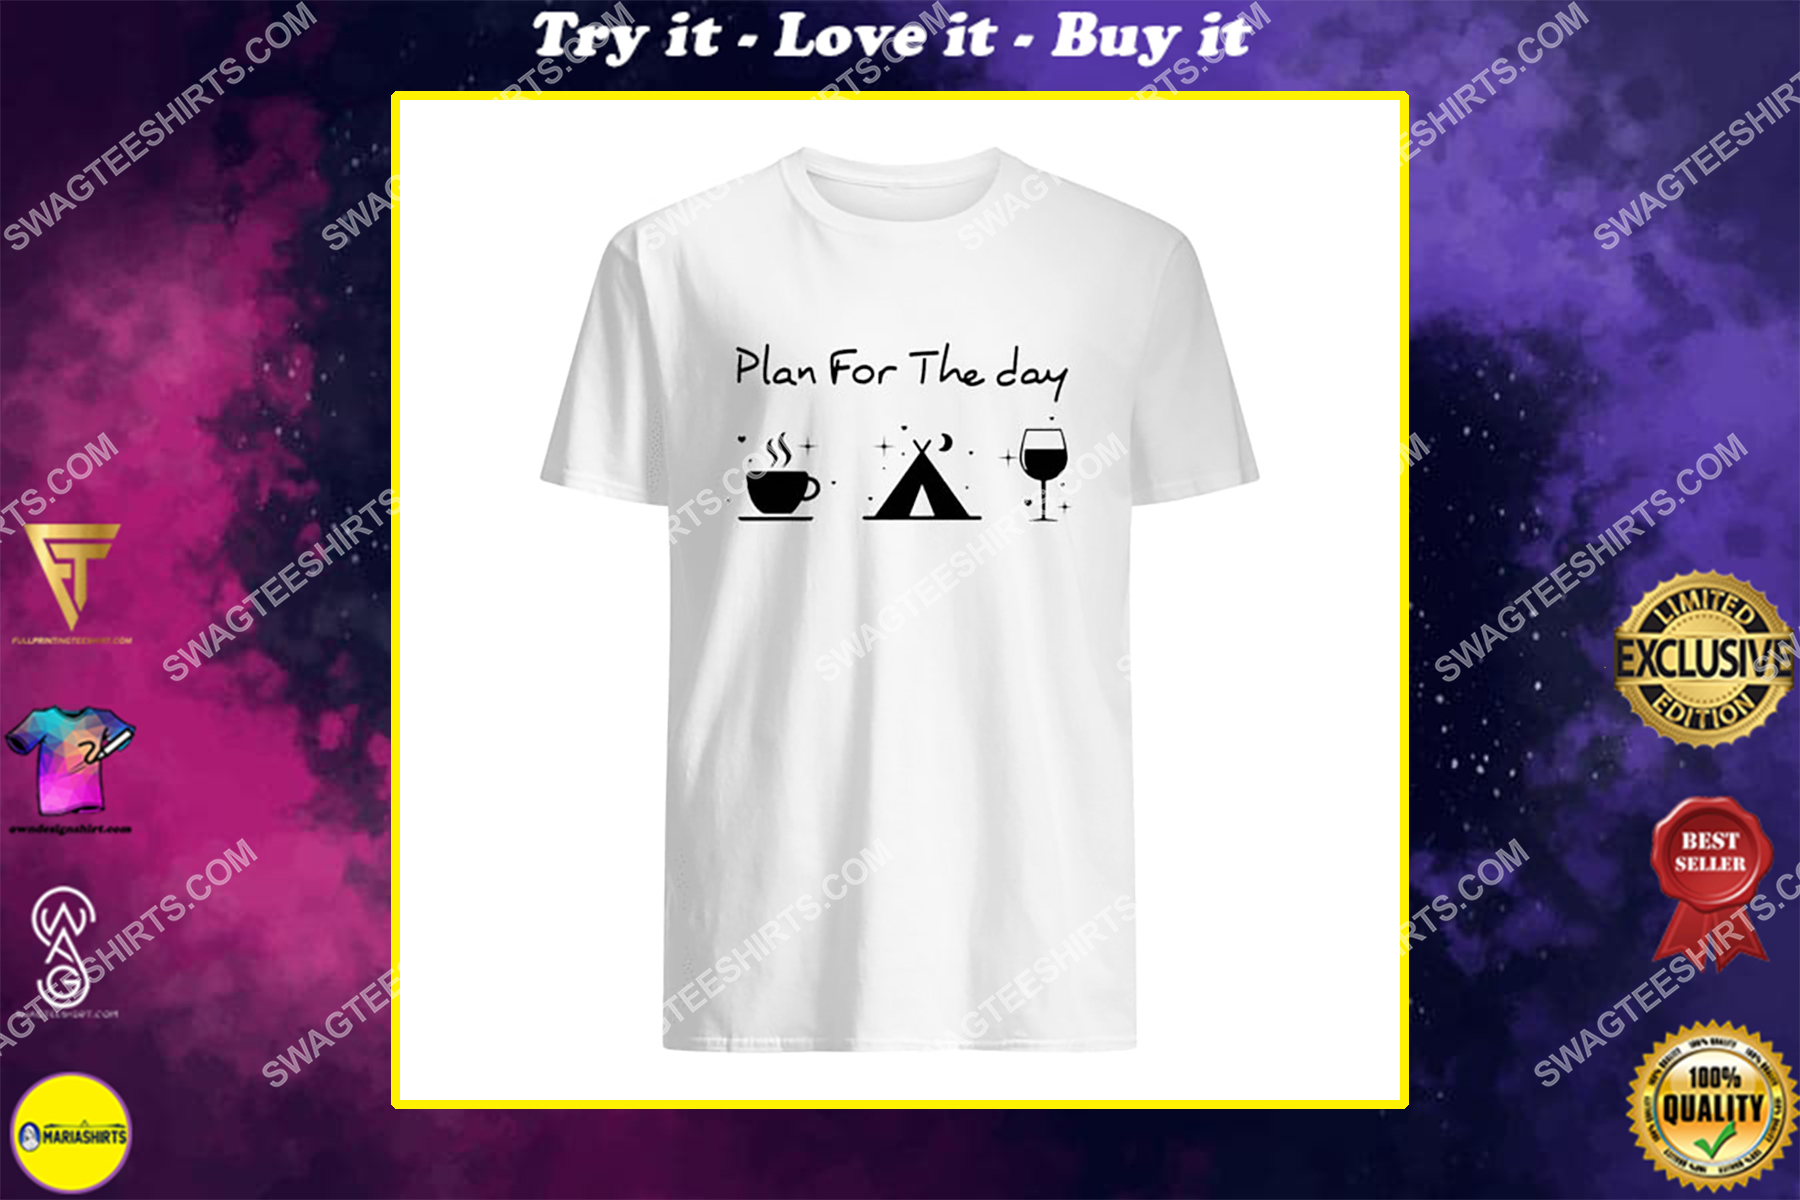 plan for the day coffee camping and wine for camper shirt